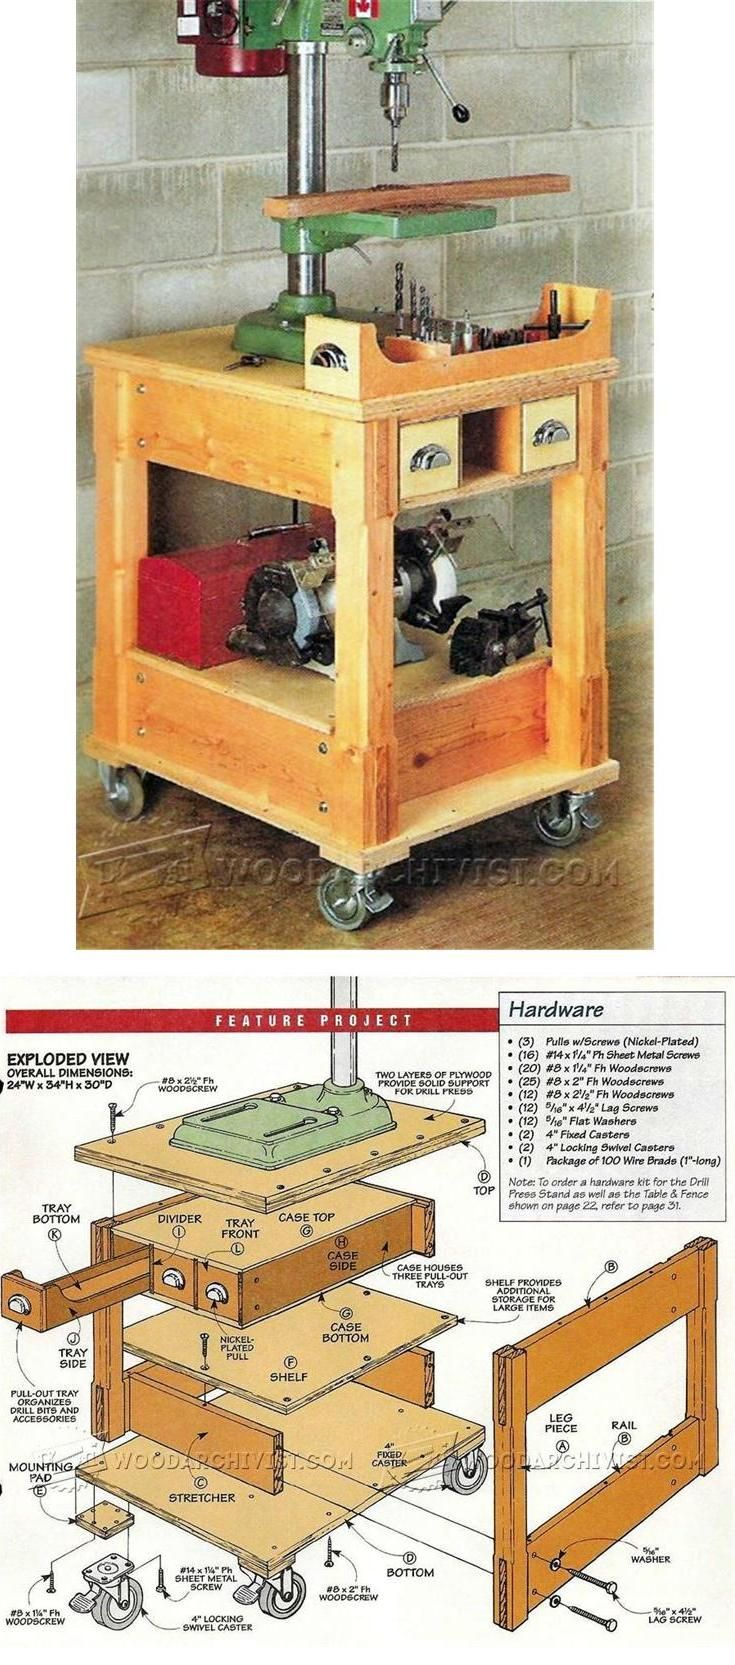 Mobile Drill Press Stand Plans - Drill Press Tips, Jigs and Fixtures | WoodArchivist.com